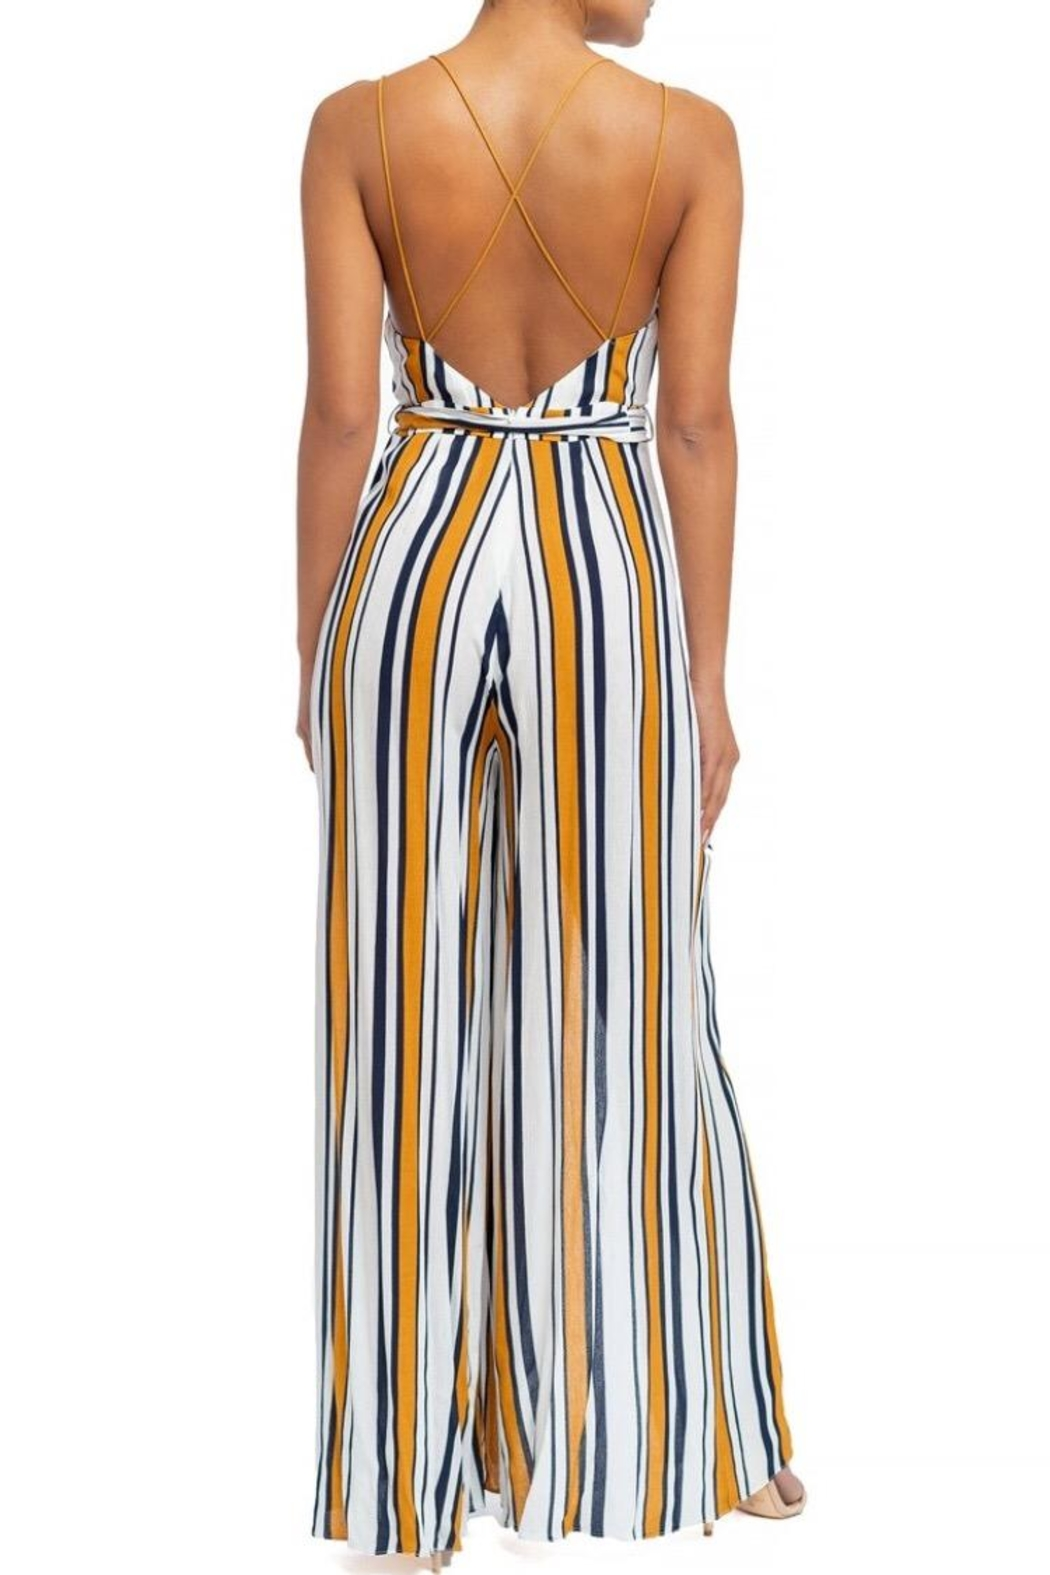 luxxel Striped Split Jumpsuit - Front Full Image